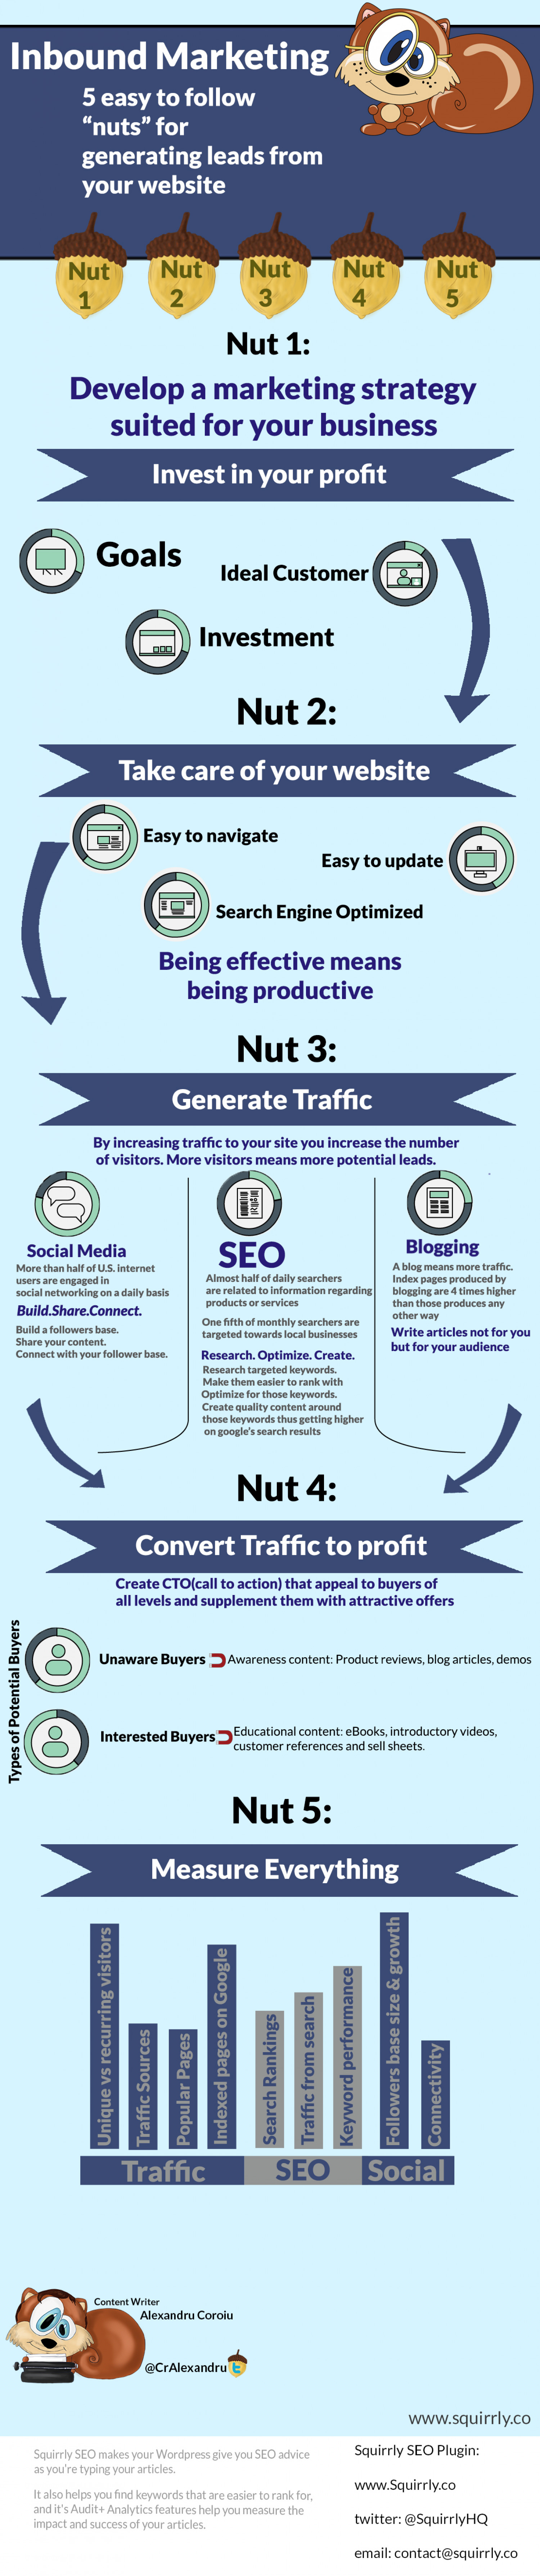 5 Tips to get a higher lead generation from your website Infographic